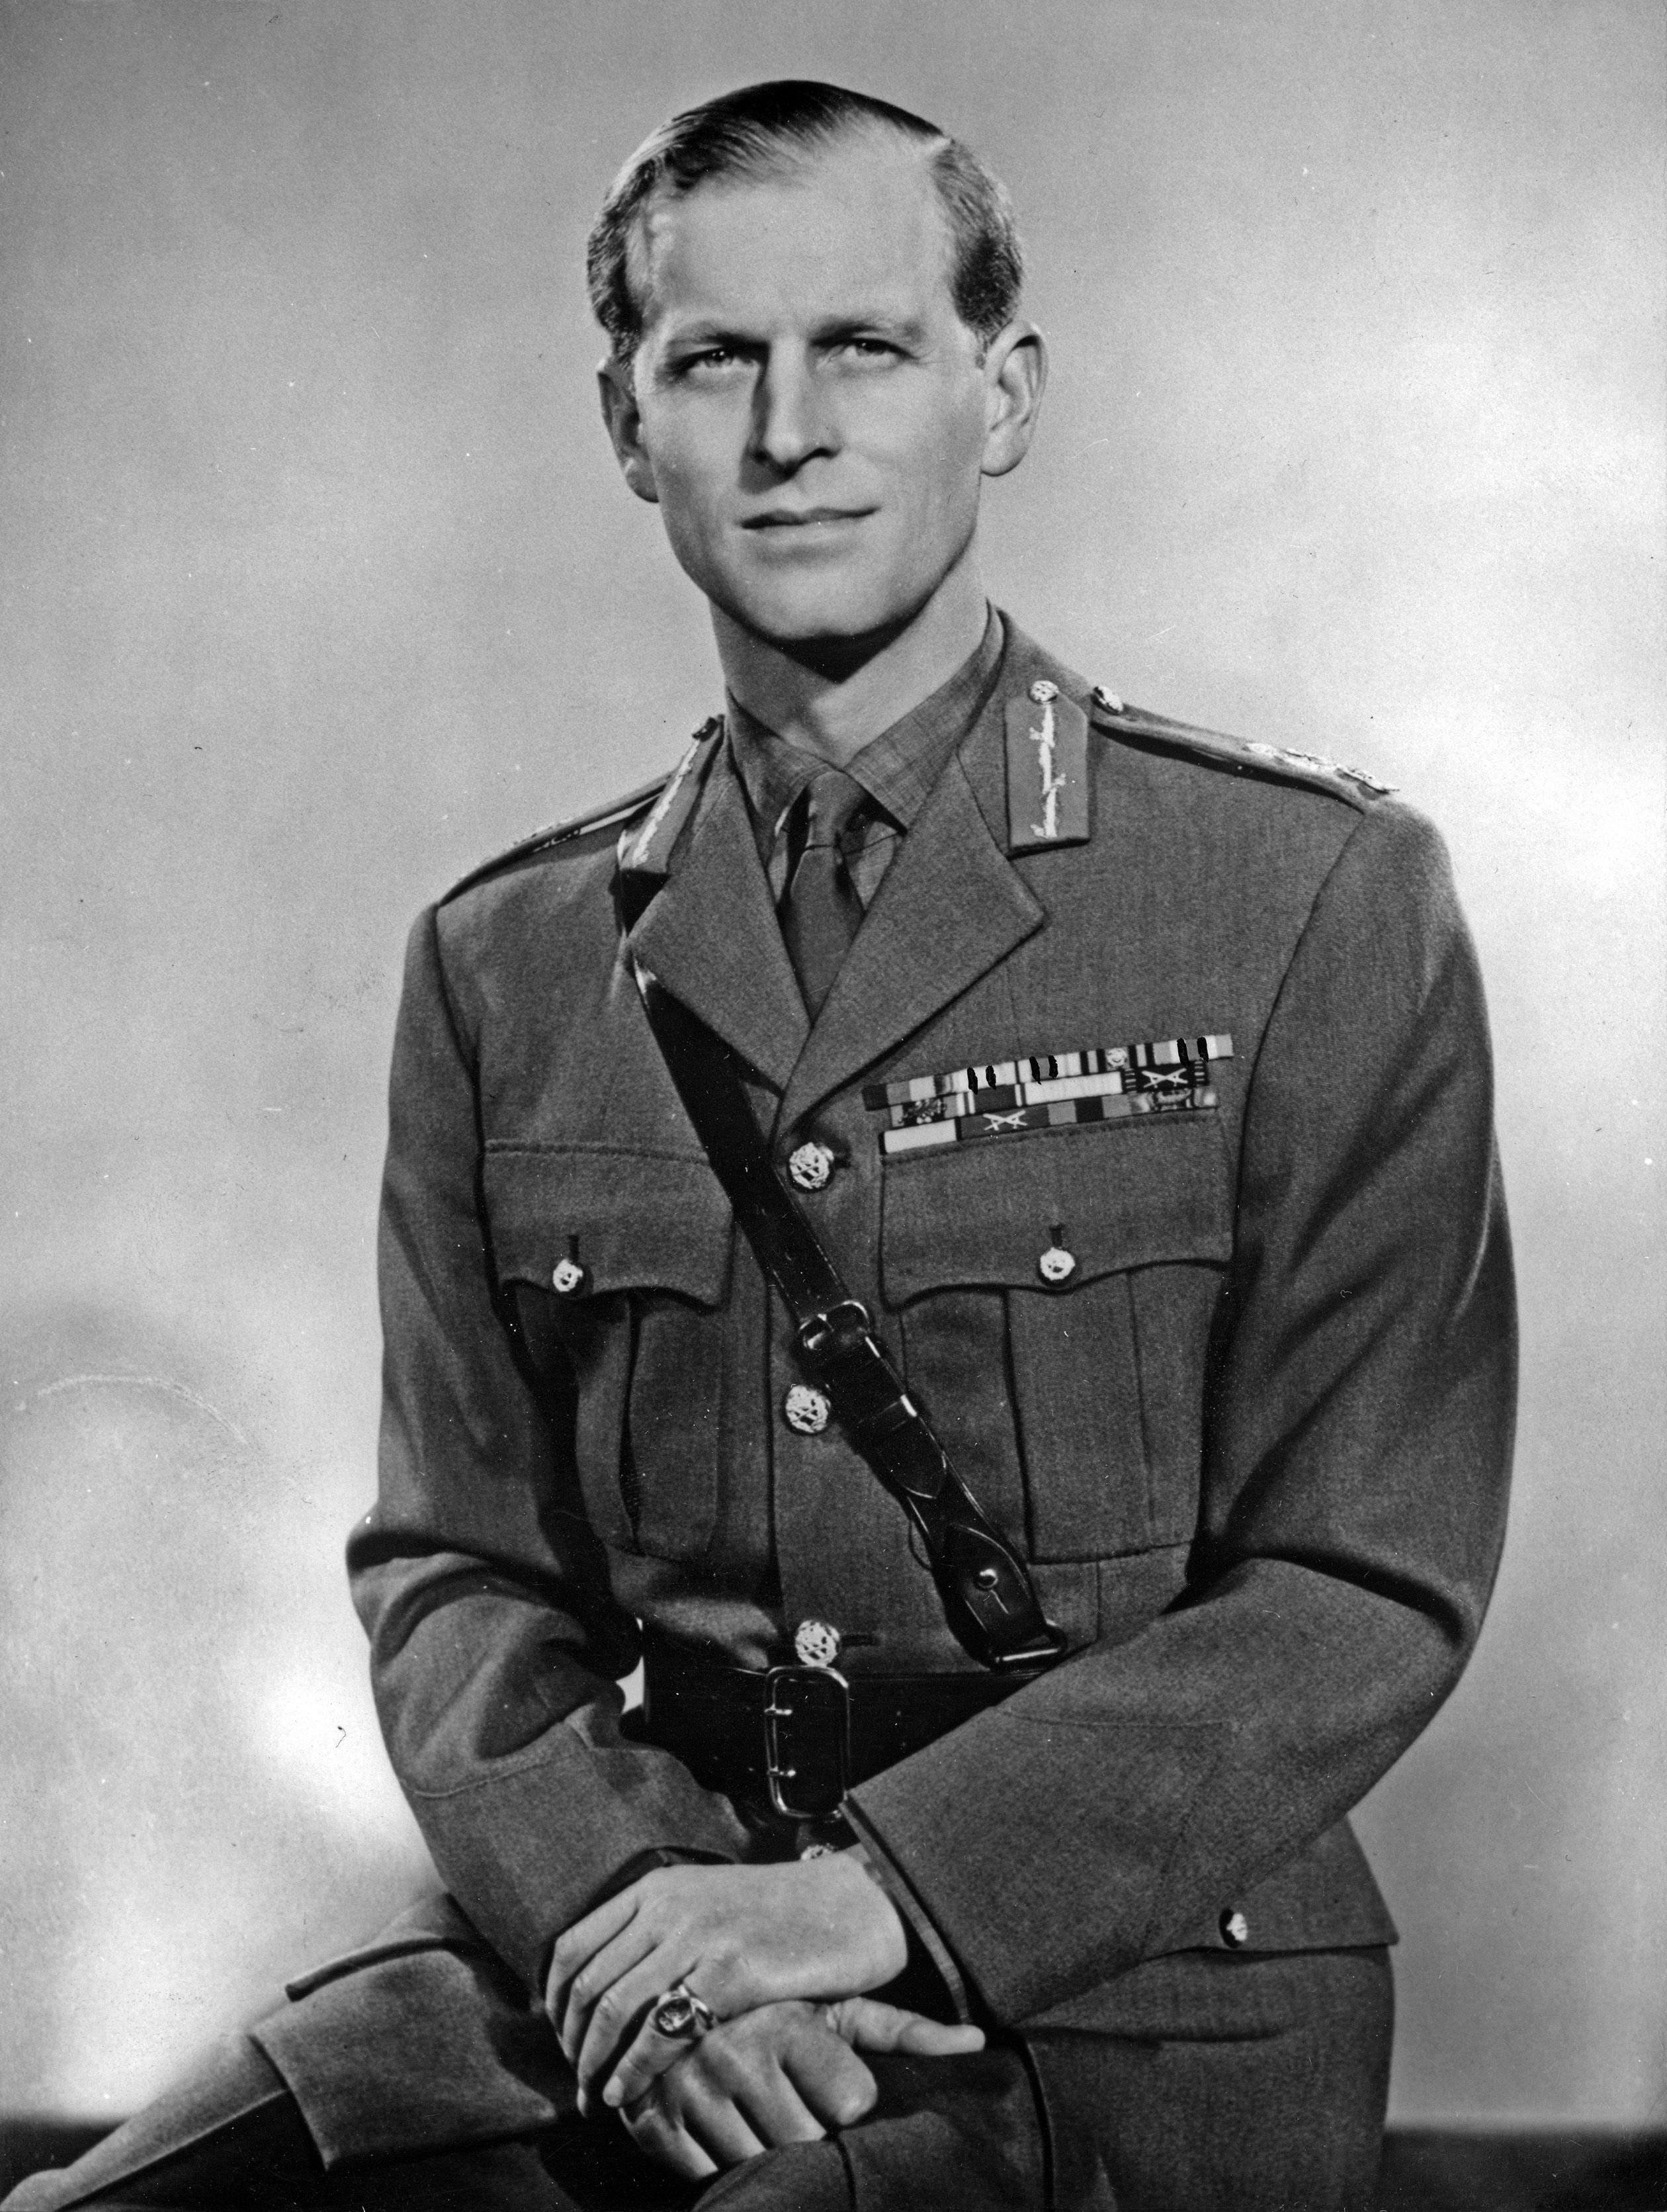 Prince Philip in his uniform of Field Marshal of the British Army, in 1953 | Source: Getty Images